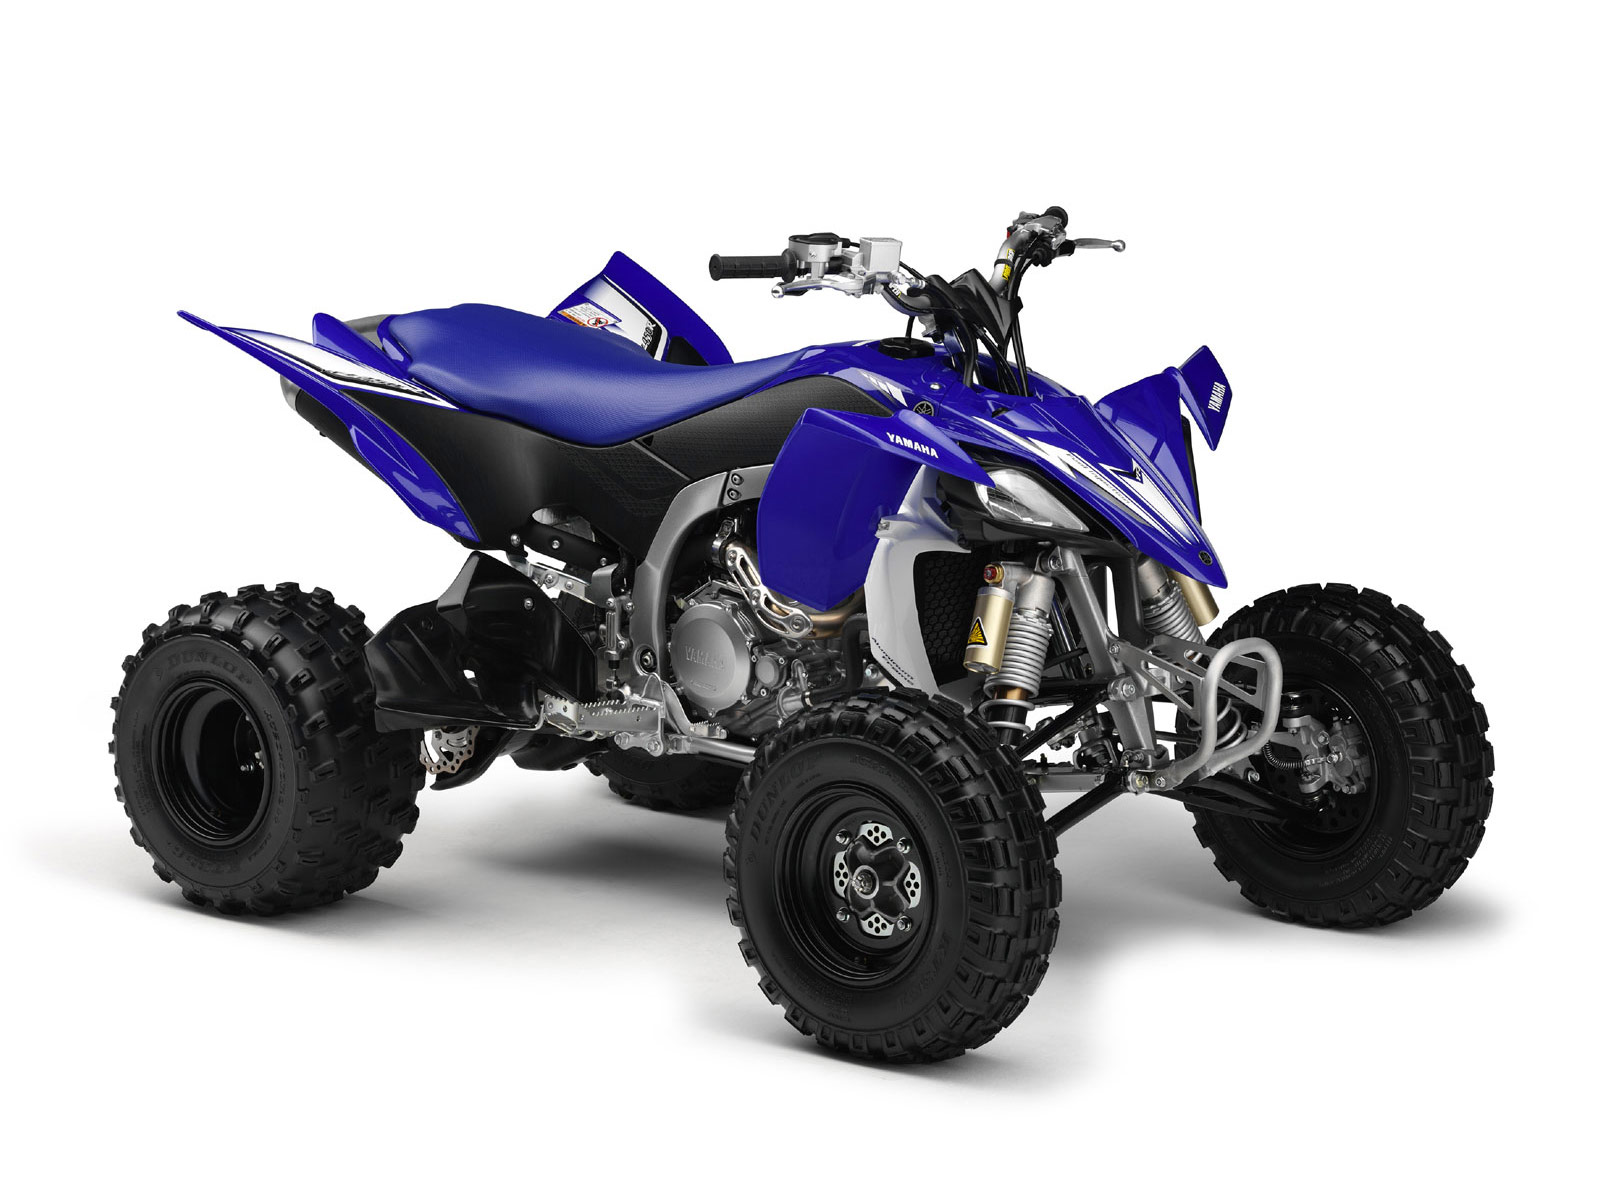 Yamaha Yfz450r Photo And Video Review Comments Warrior 350 Wiring Diagram 4 Wheeler 6